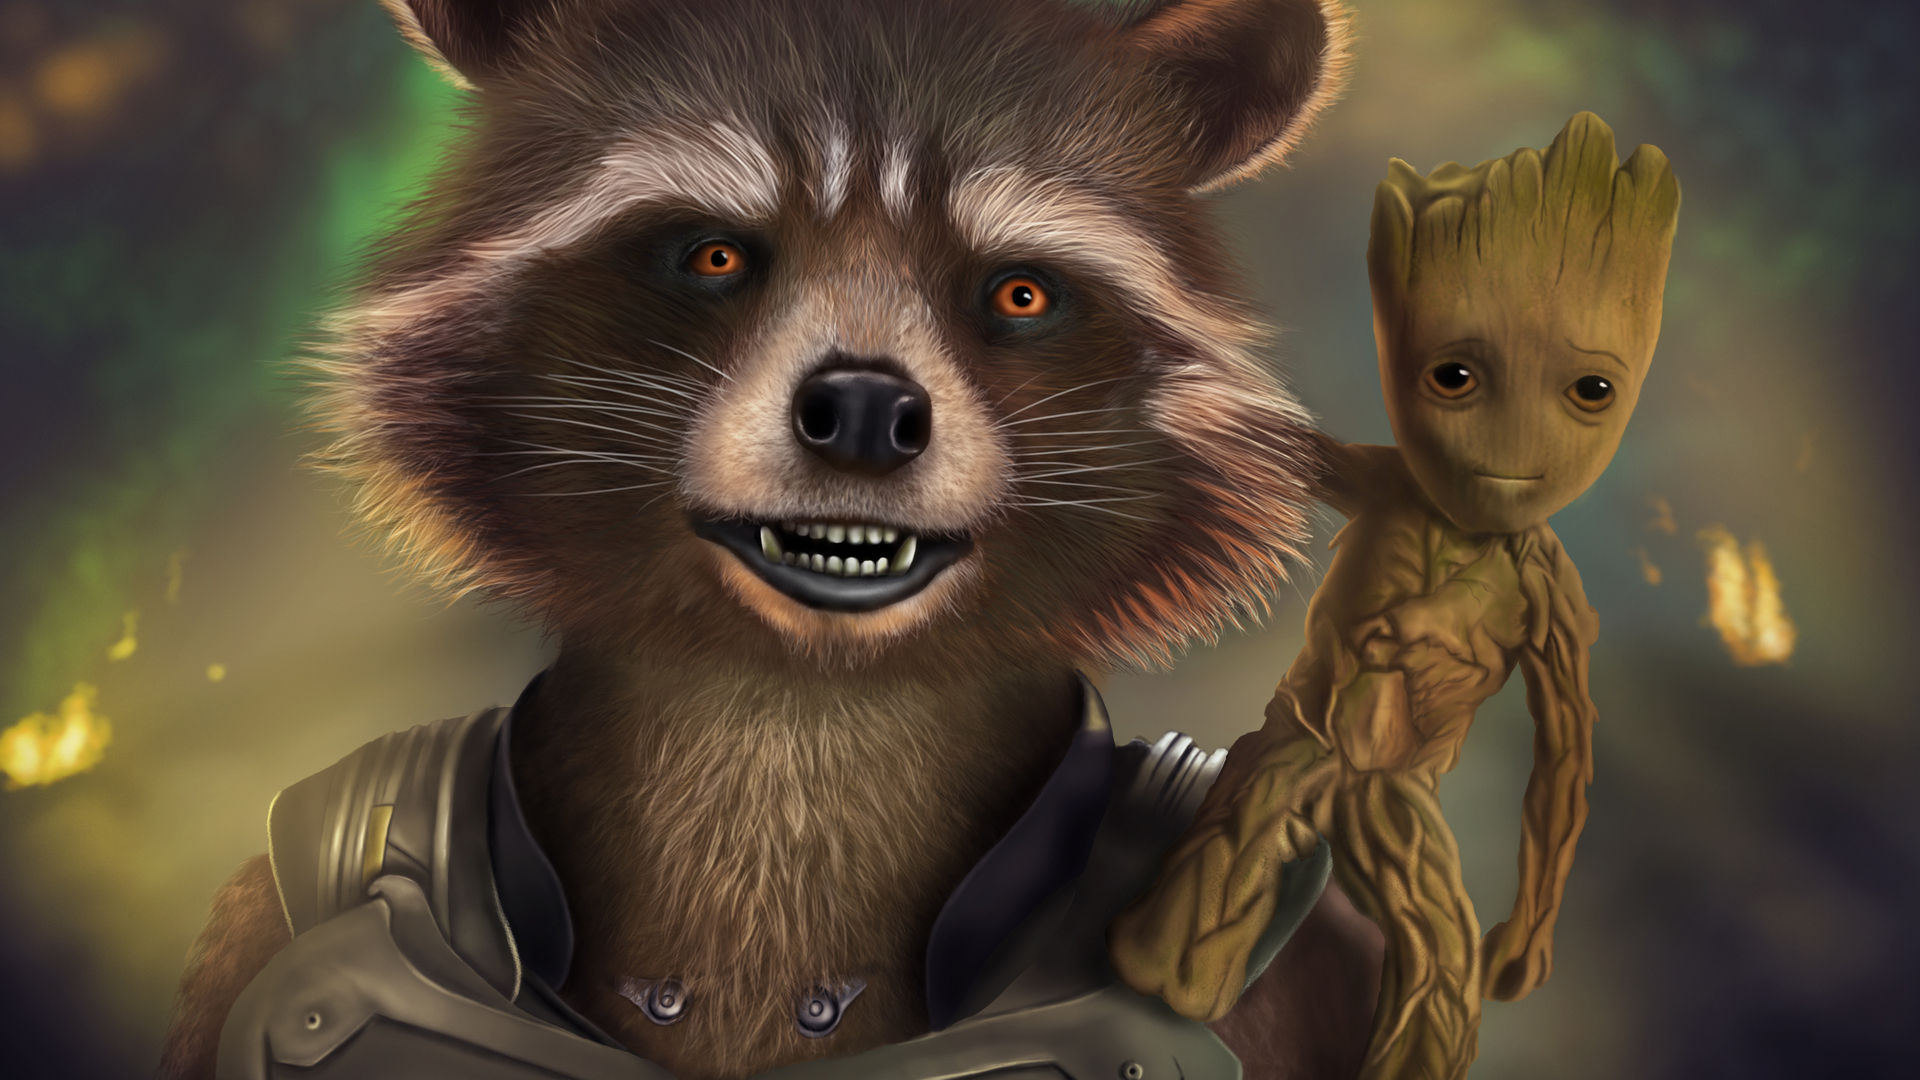 Cute Baby Hd Wallpaper For Laptop 1920x1080 Rocket And Baby Groot Artwork Laptop Full Hd